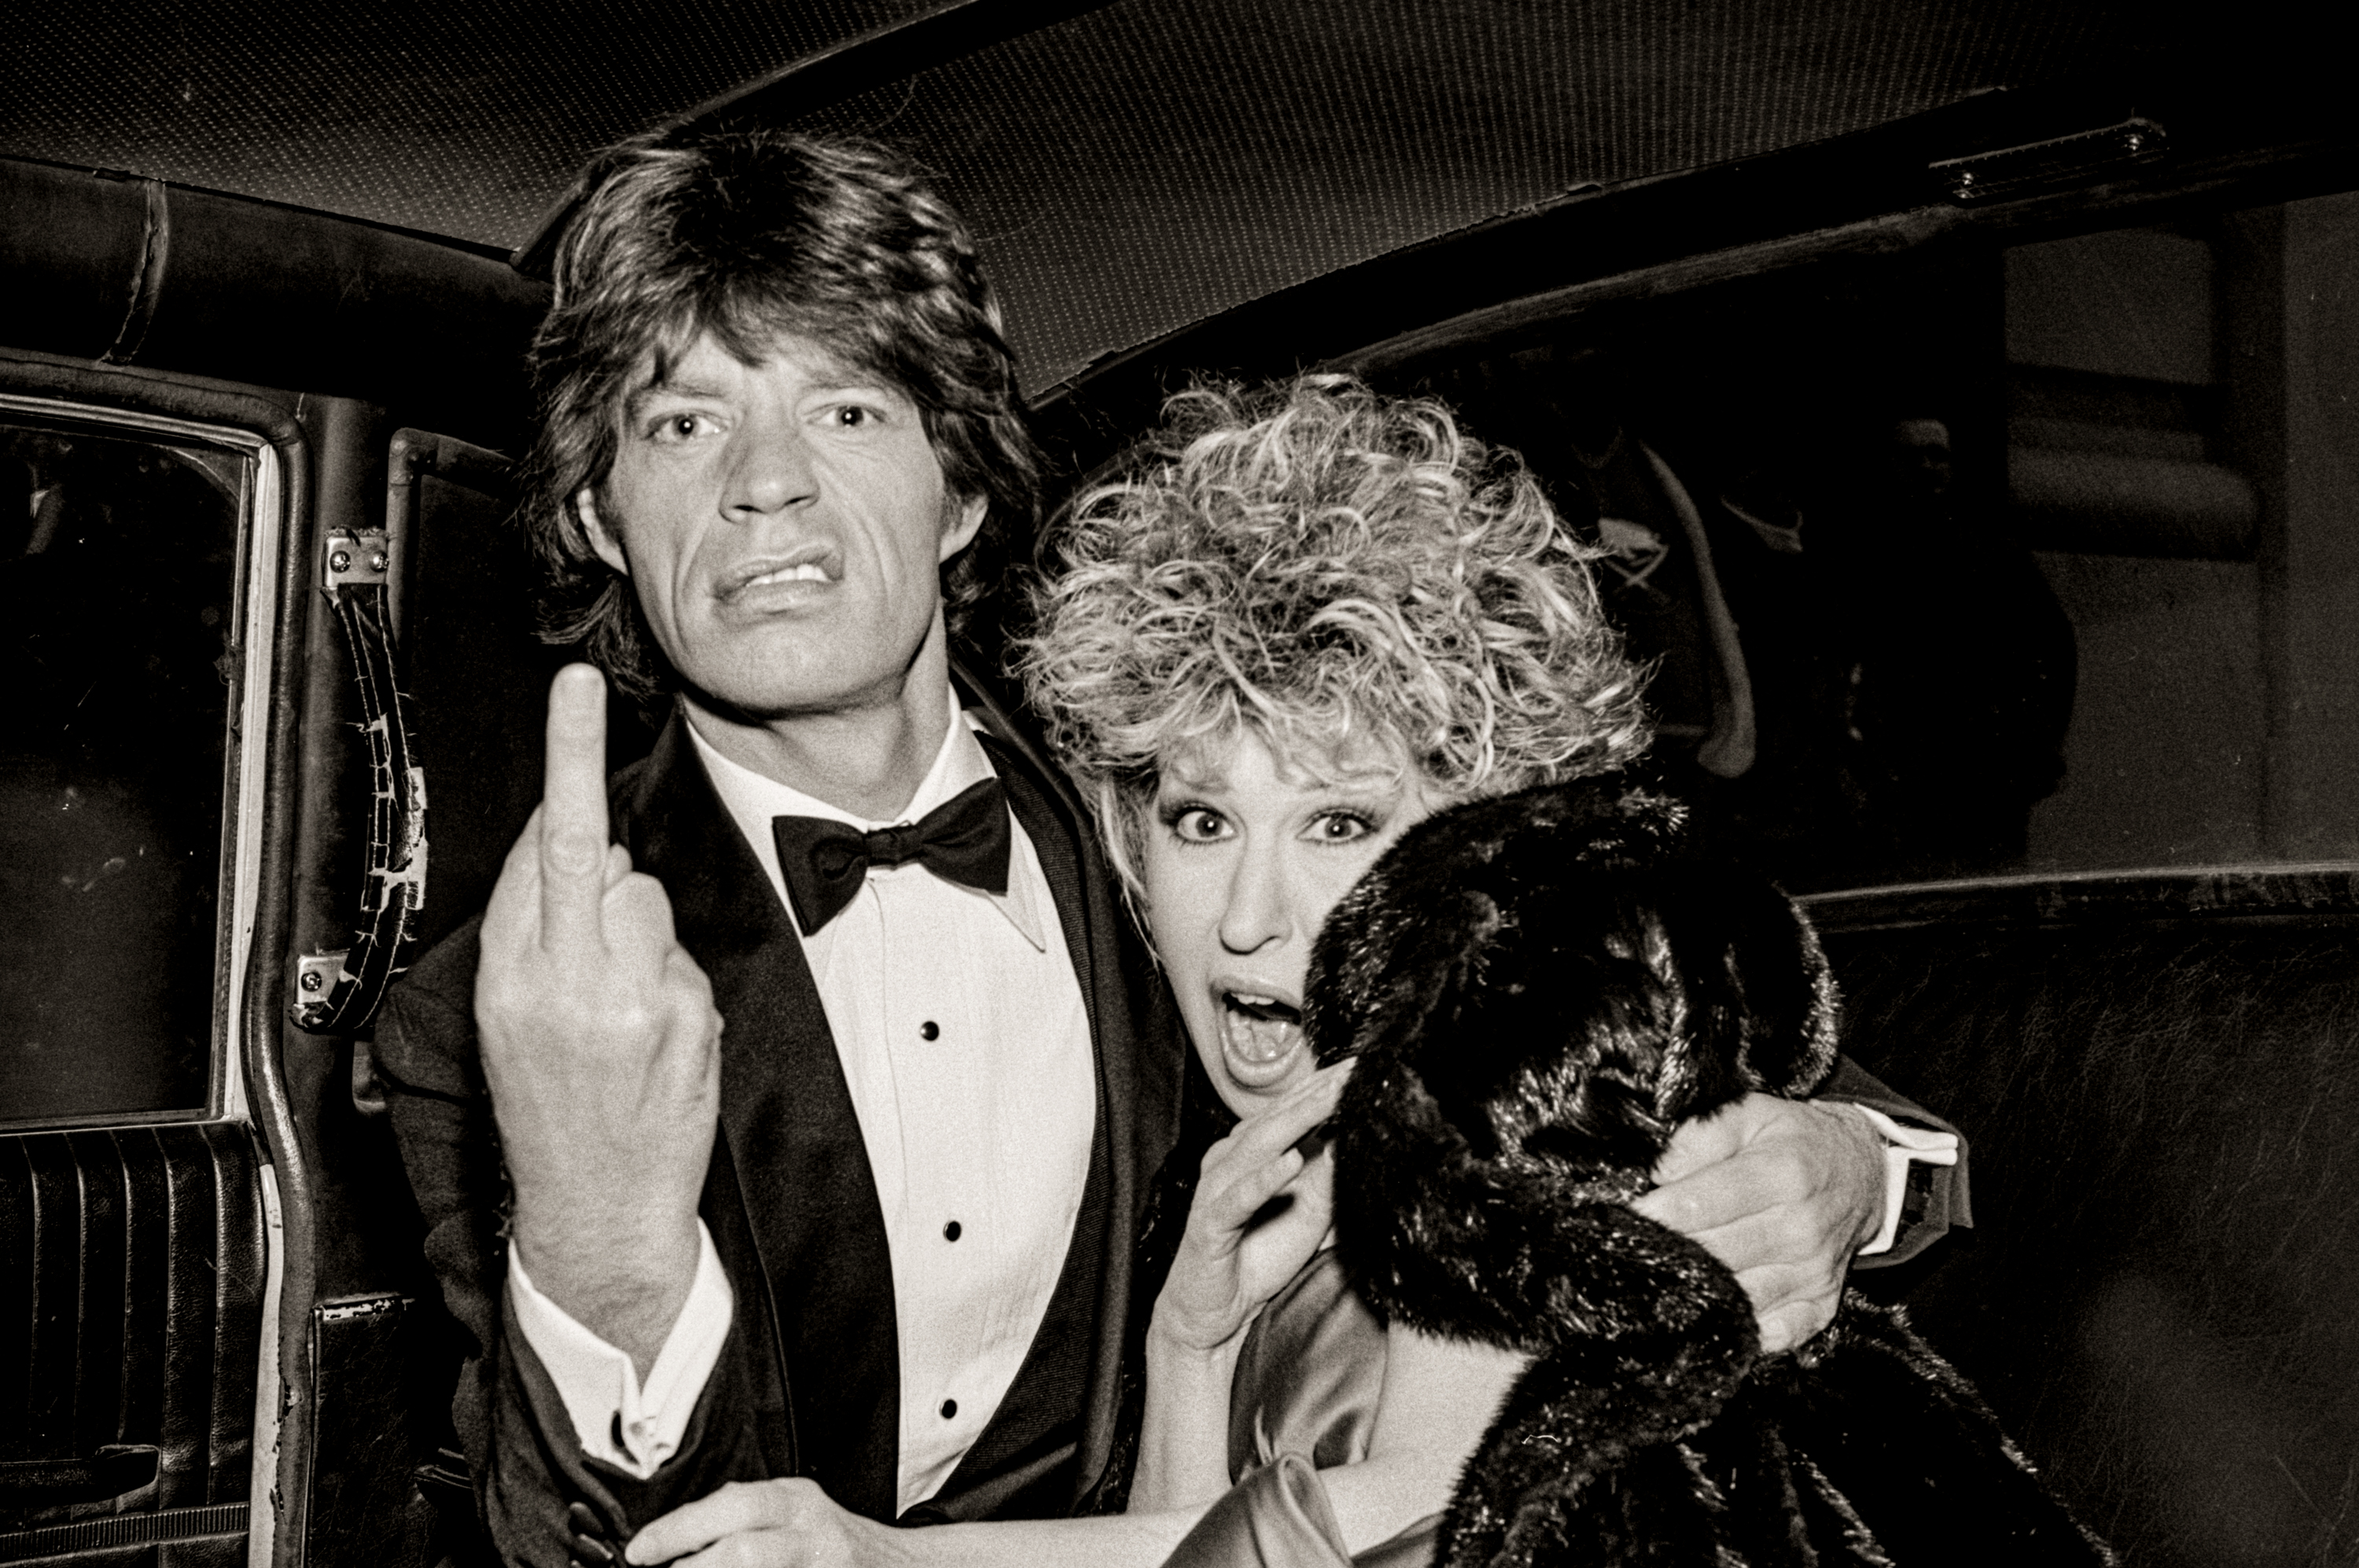 Mick Jagger and Bette Midler